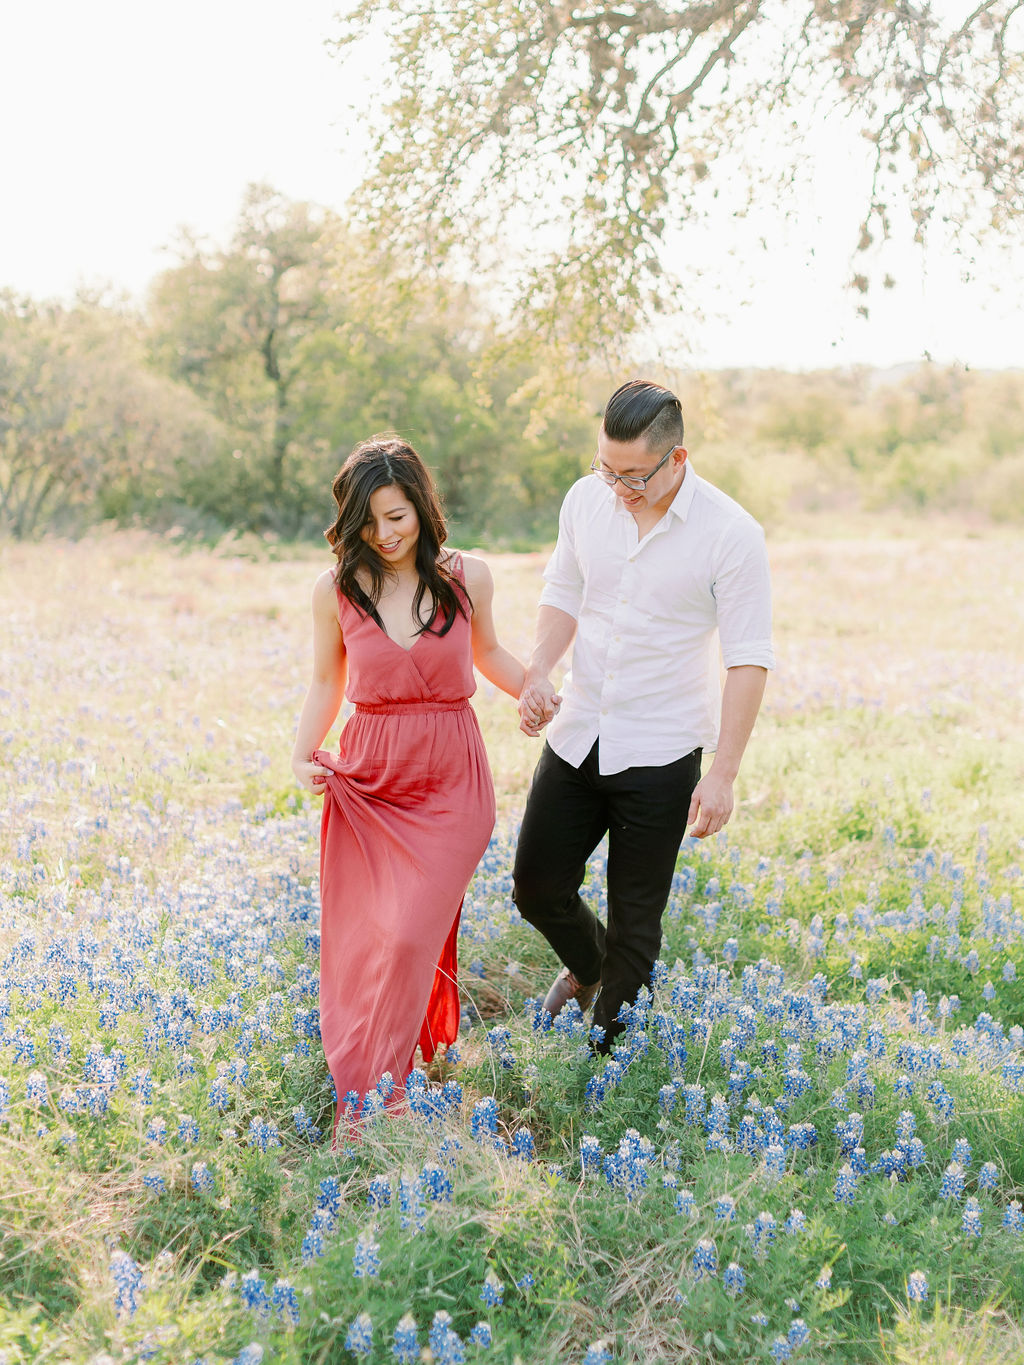 Austin-Film-Wedding-Photographer-Engagement-Session-Fun-adventure-outdoor-fine-art-2.jpg